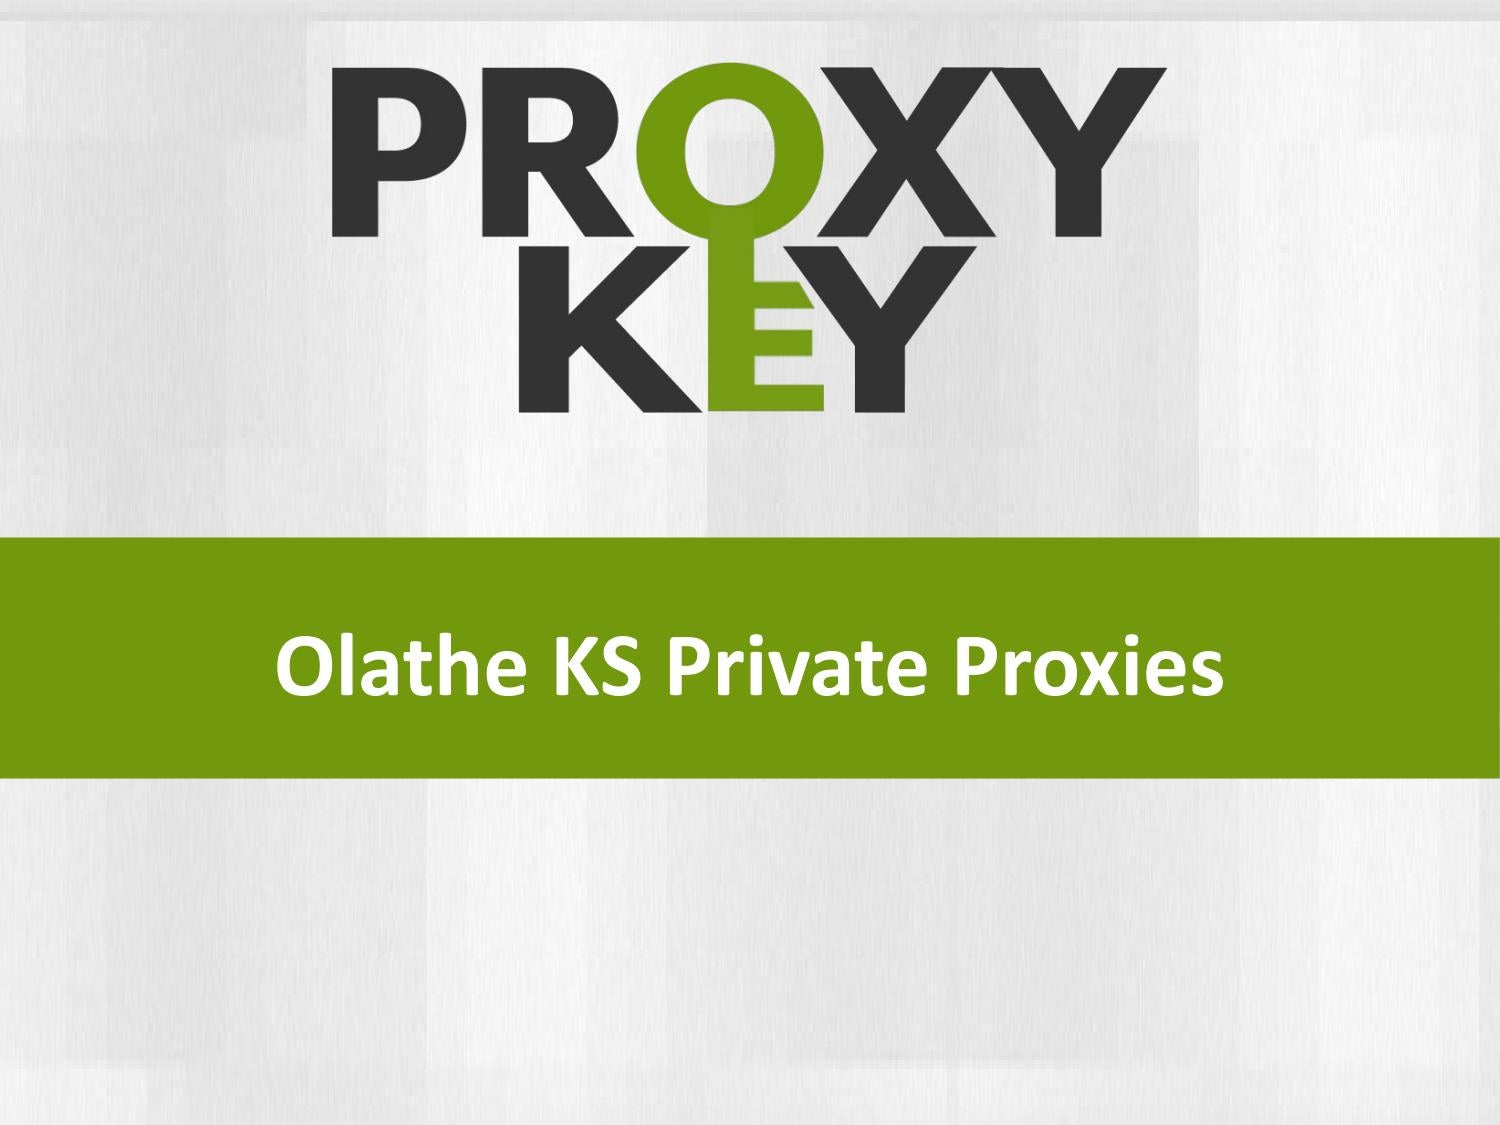 Olathe Ks Private Proxies Proxy Key By Proxy Key Issuu